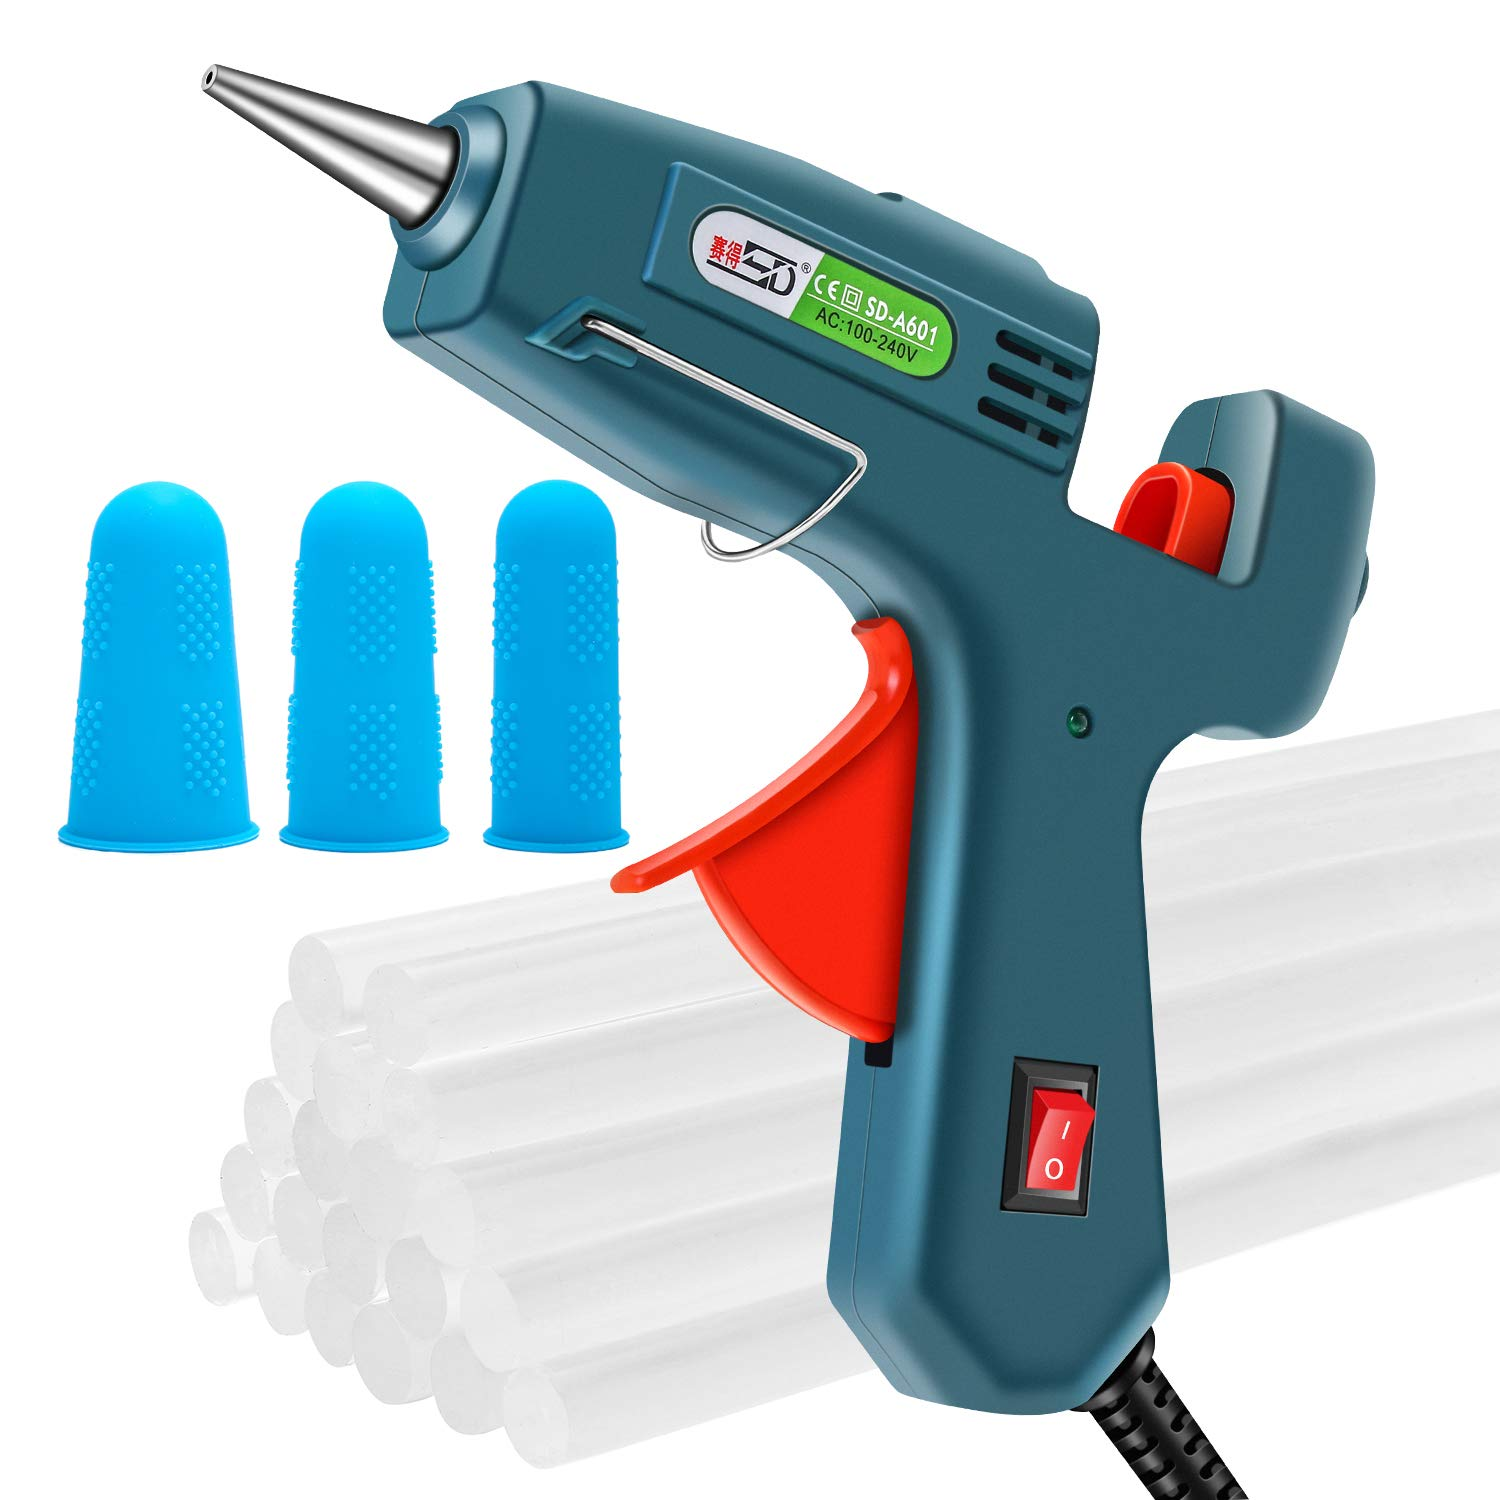 Hot Melt Glue Gun with 20pcs Glue Sticks, Removable Anti-hot Cover Glue Gun Kit with Flexible Trigger for DIY Small Craft Projects & Sealing and Quick Daily Repairs 20 Watt KANGGE